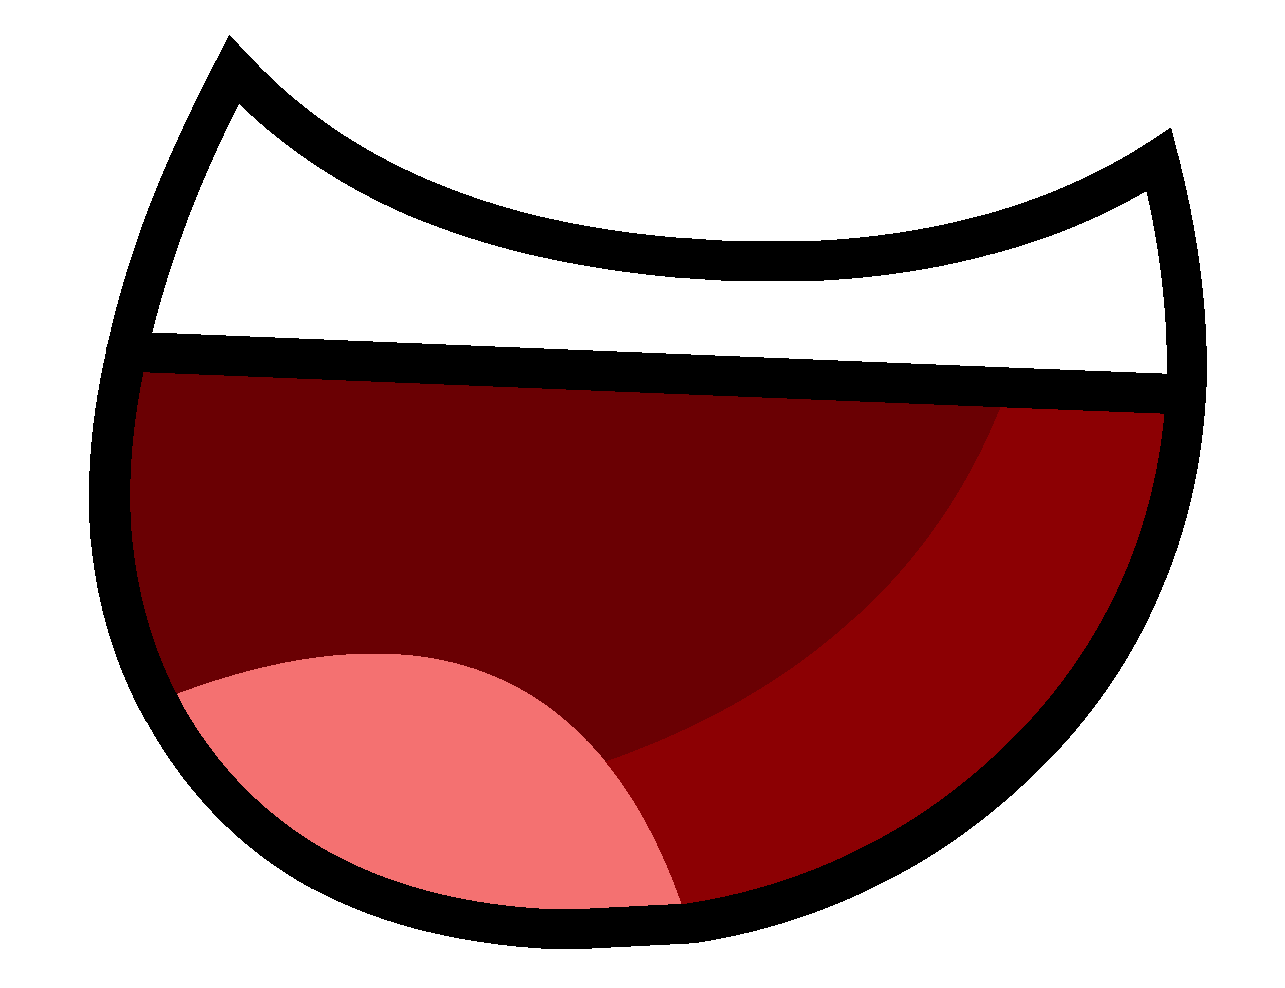 Smile Lips PNG - 45662